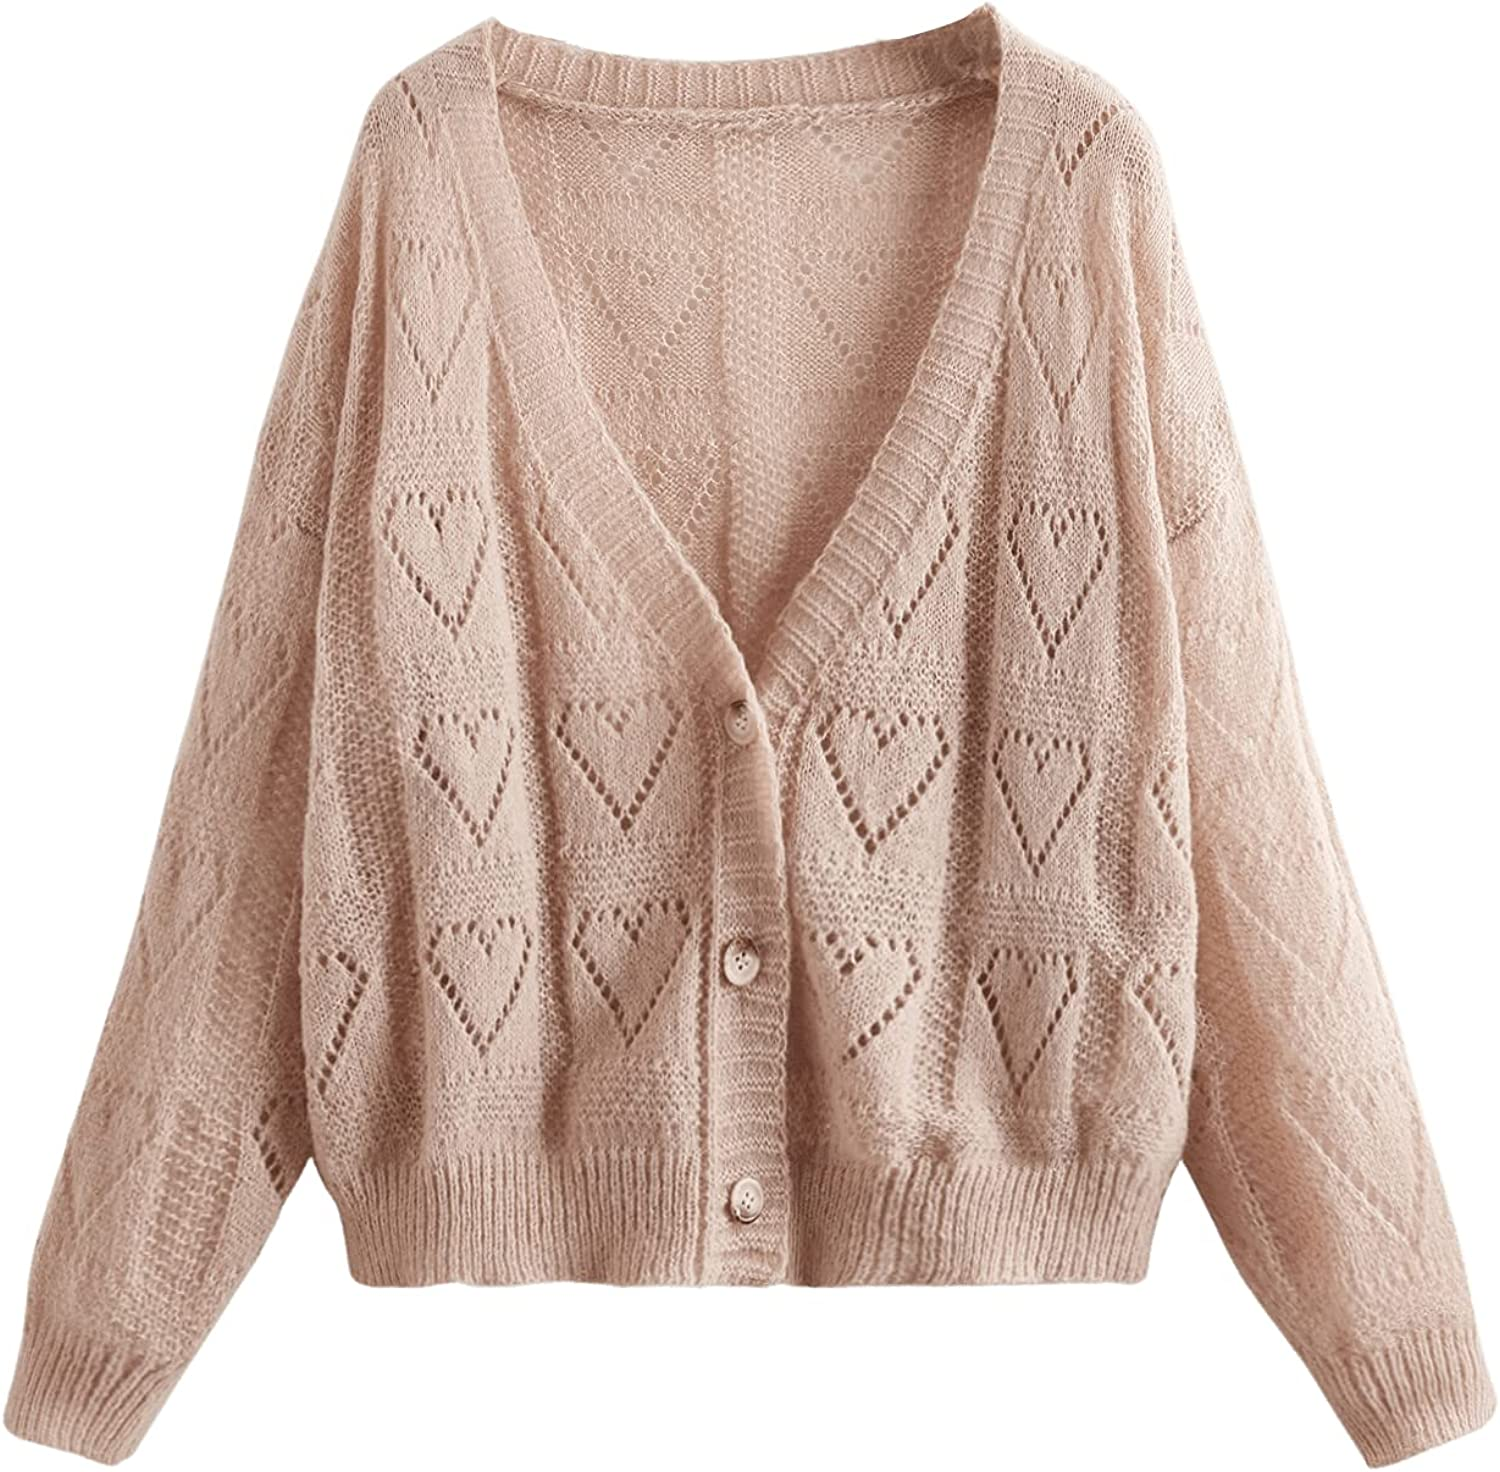 SOLY HUX Women's Plus Size Deep V Neck Long Sleeve Button Down Cardigan Sweater